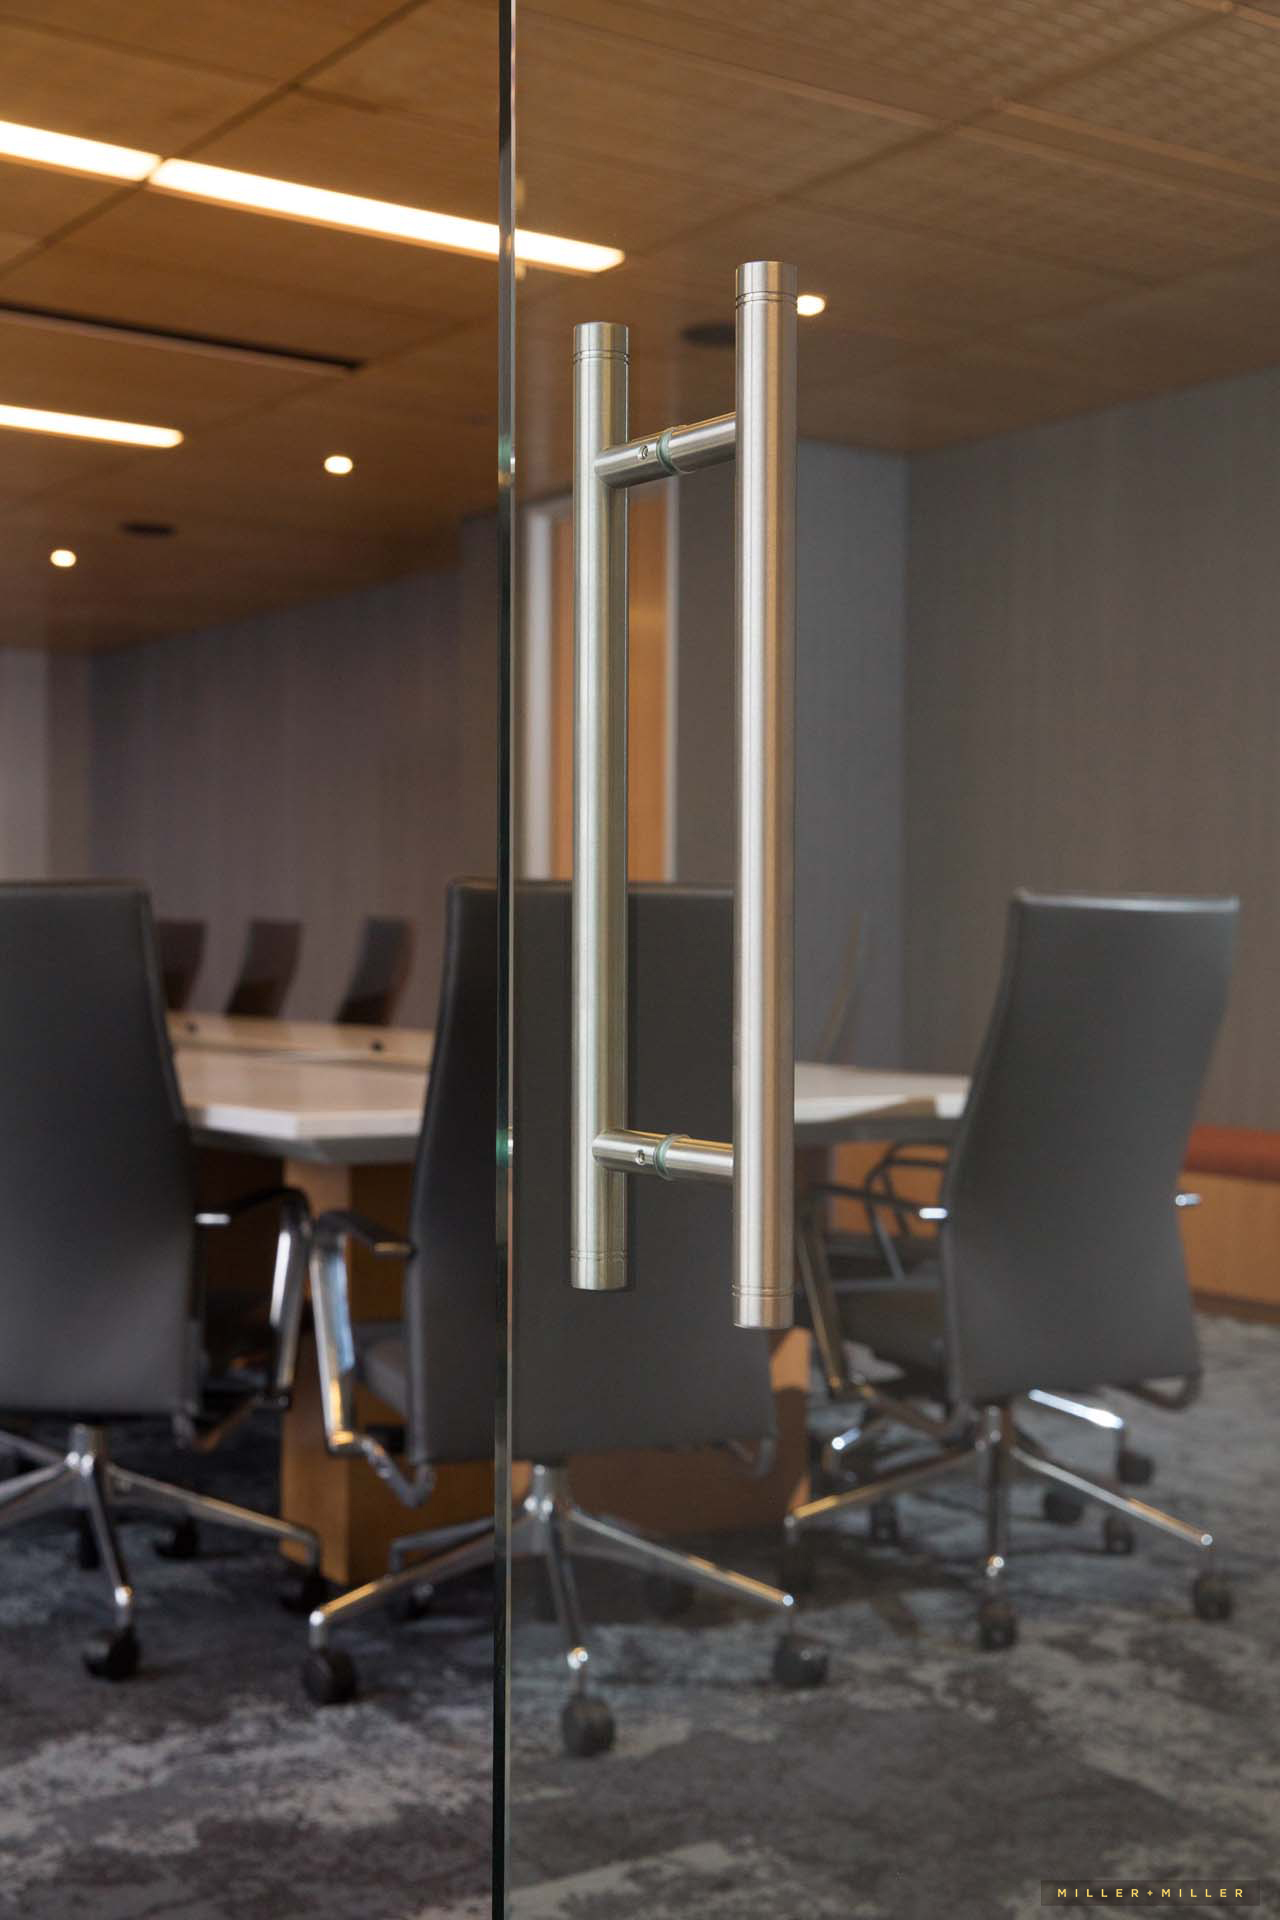 Conference Room Interiors